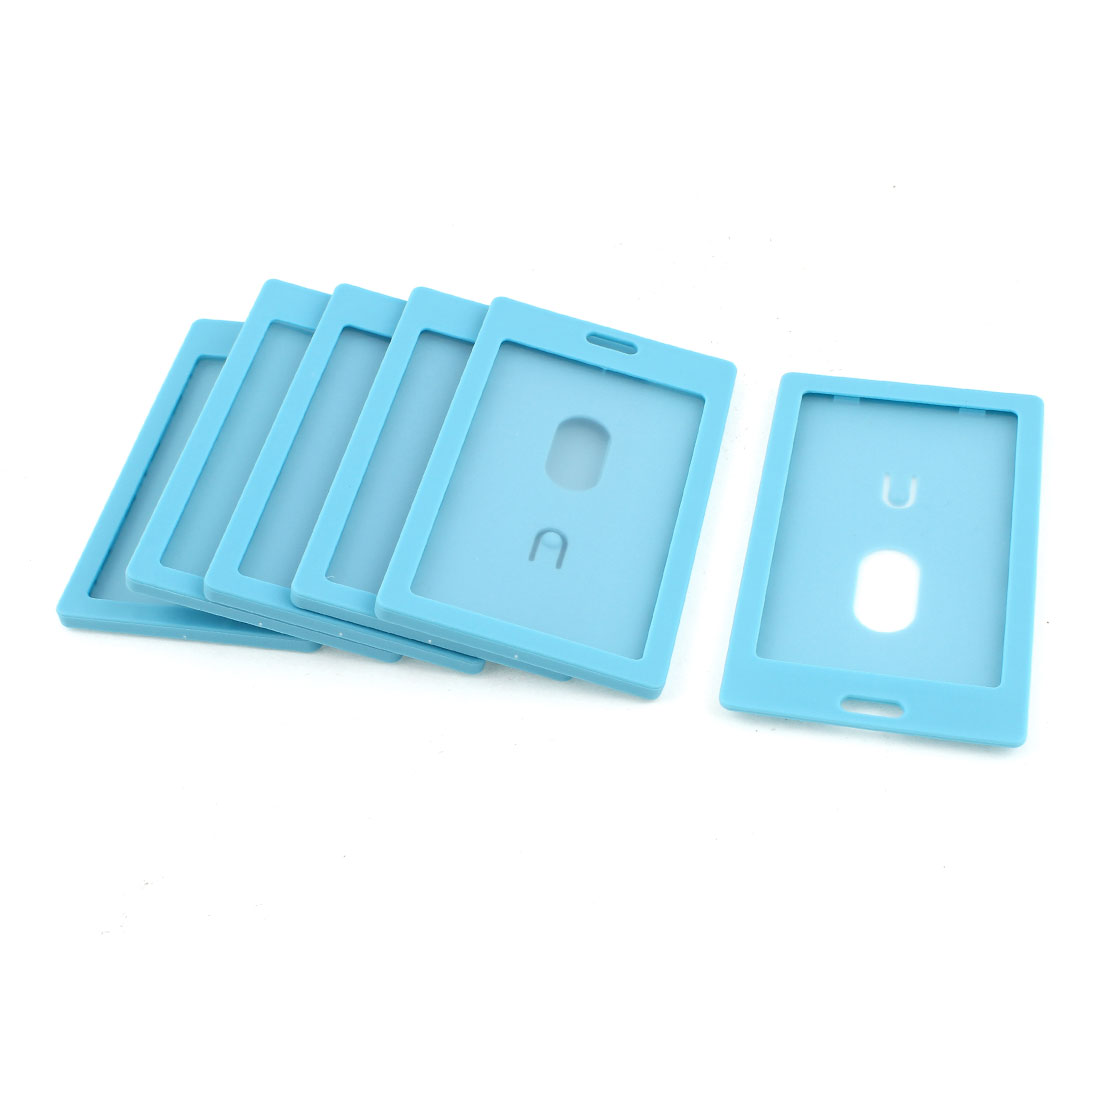 6pcs Blue Plastic Vertical School Work ID Holder Attachment Top 54mm x 90mm